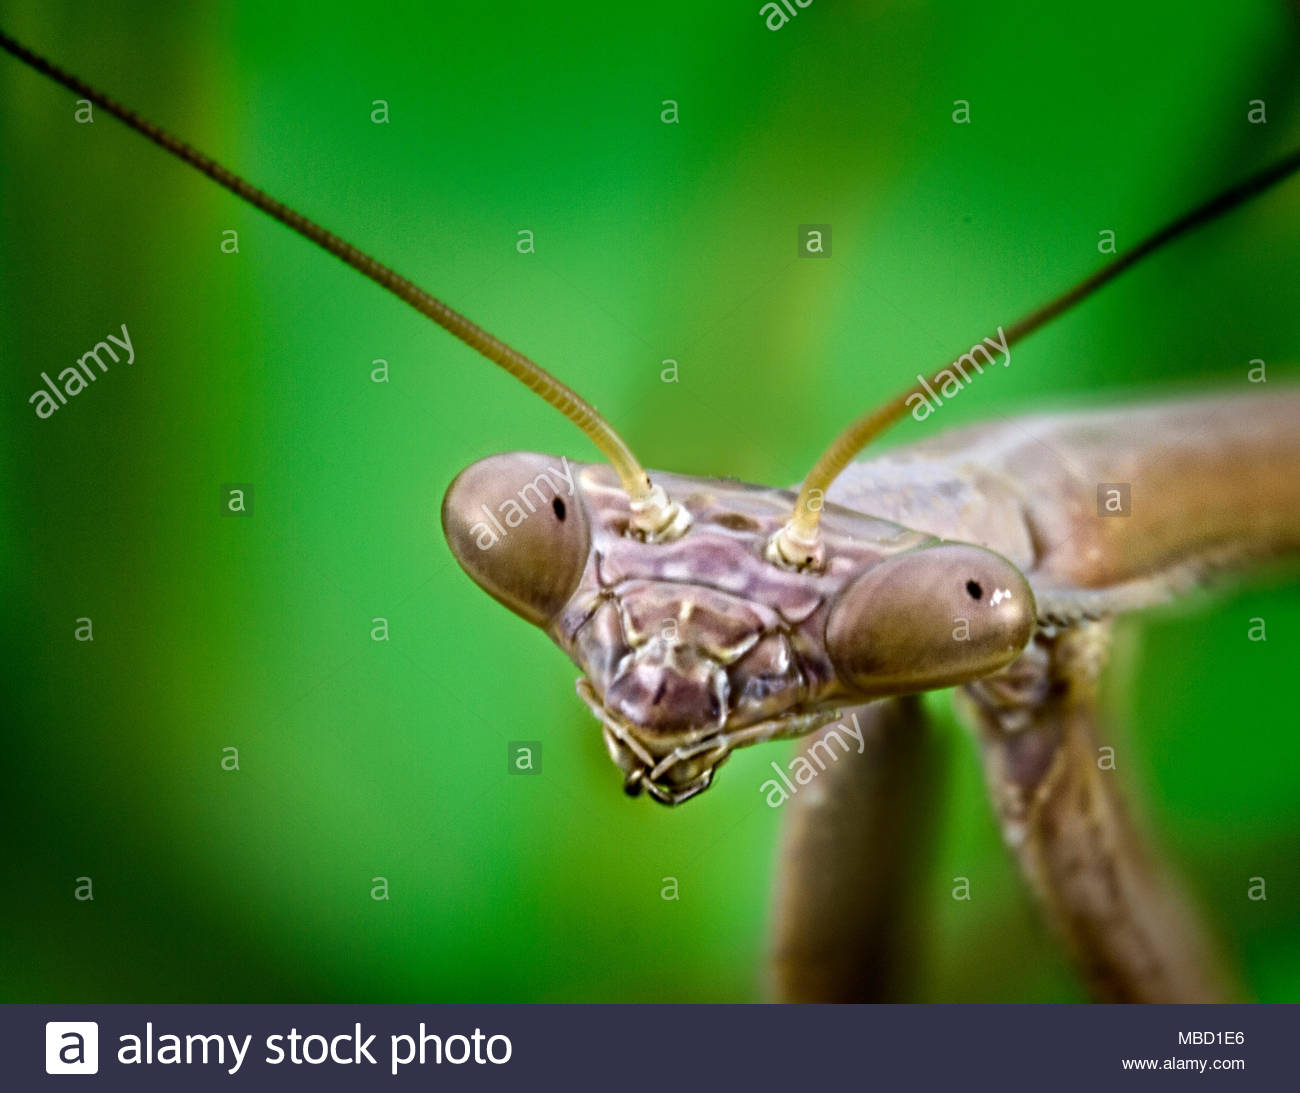 Praying Mantis Insect In Close Up - Stock Image